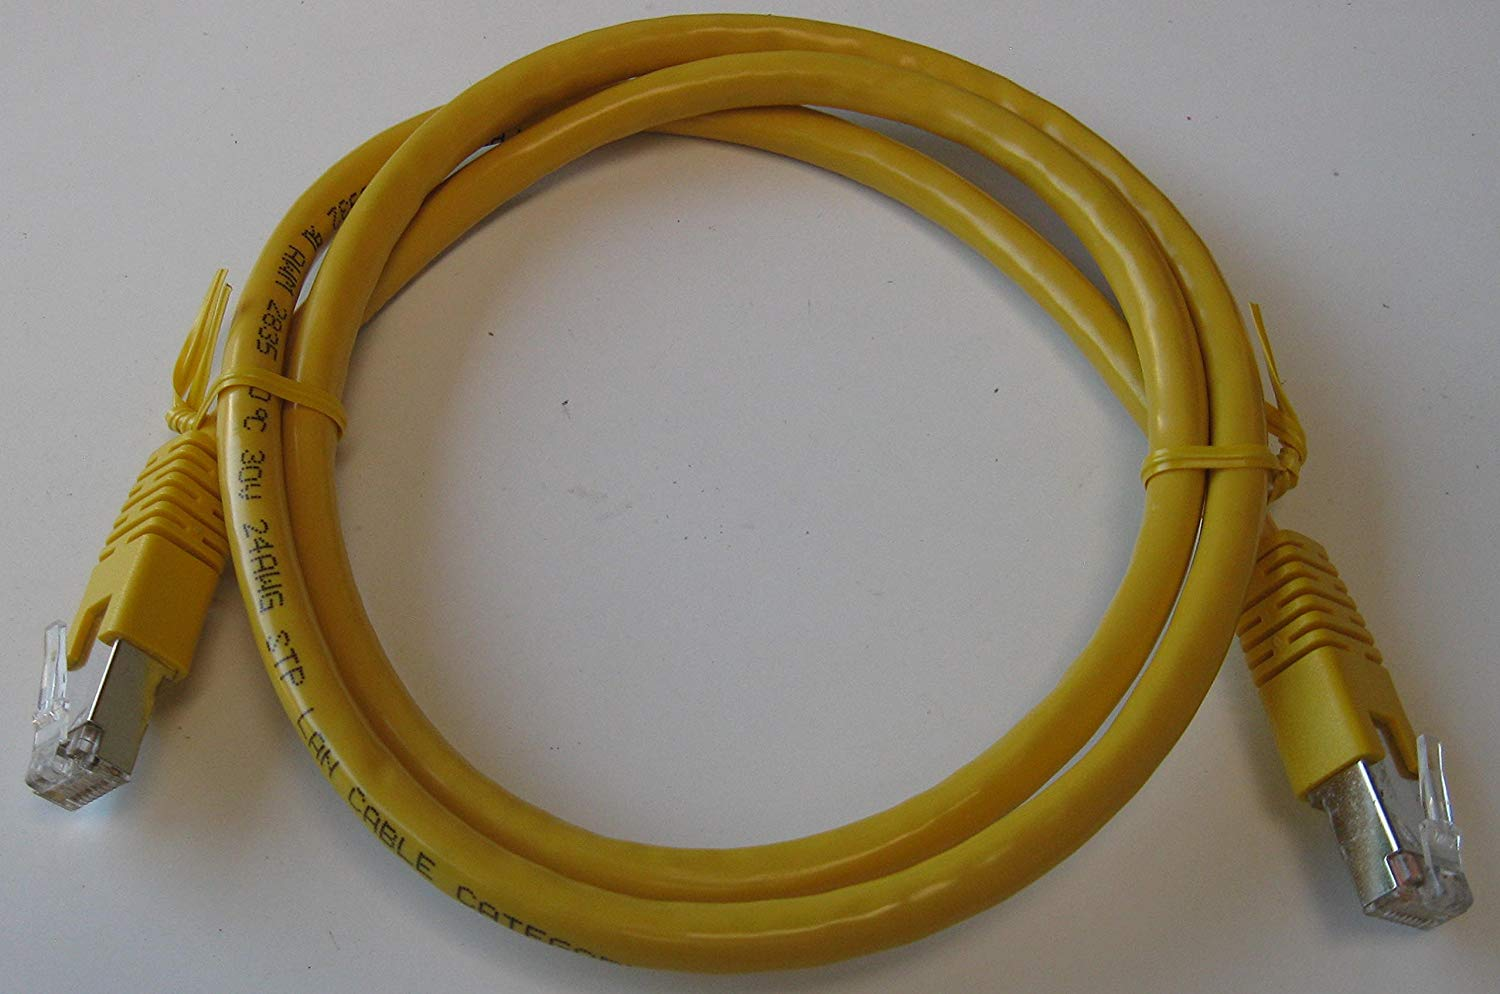 hight resolution of get quotations 5 cables of 1 meter 3 25ft cat6 550mhz shielded copper wire ethernet network